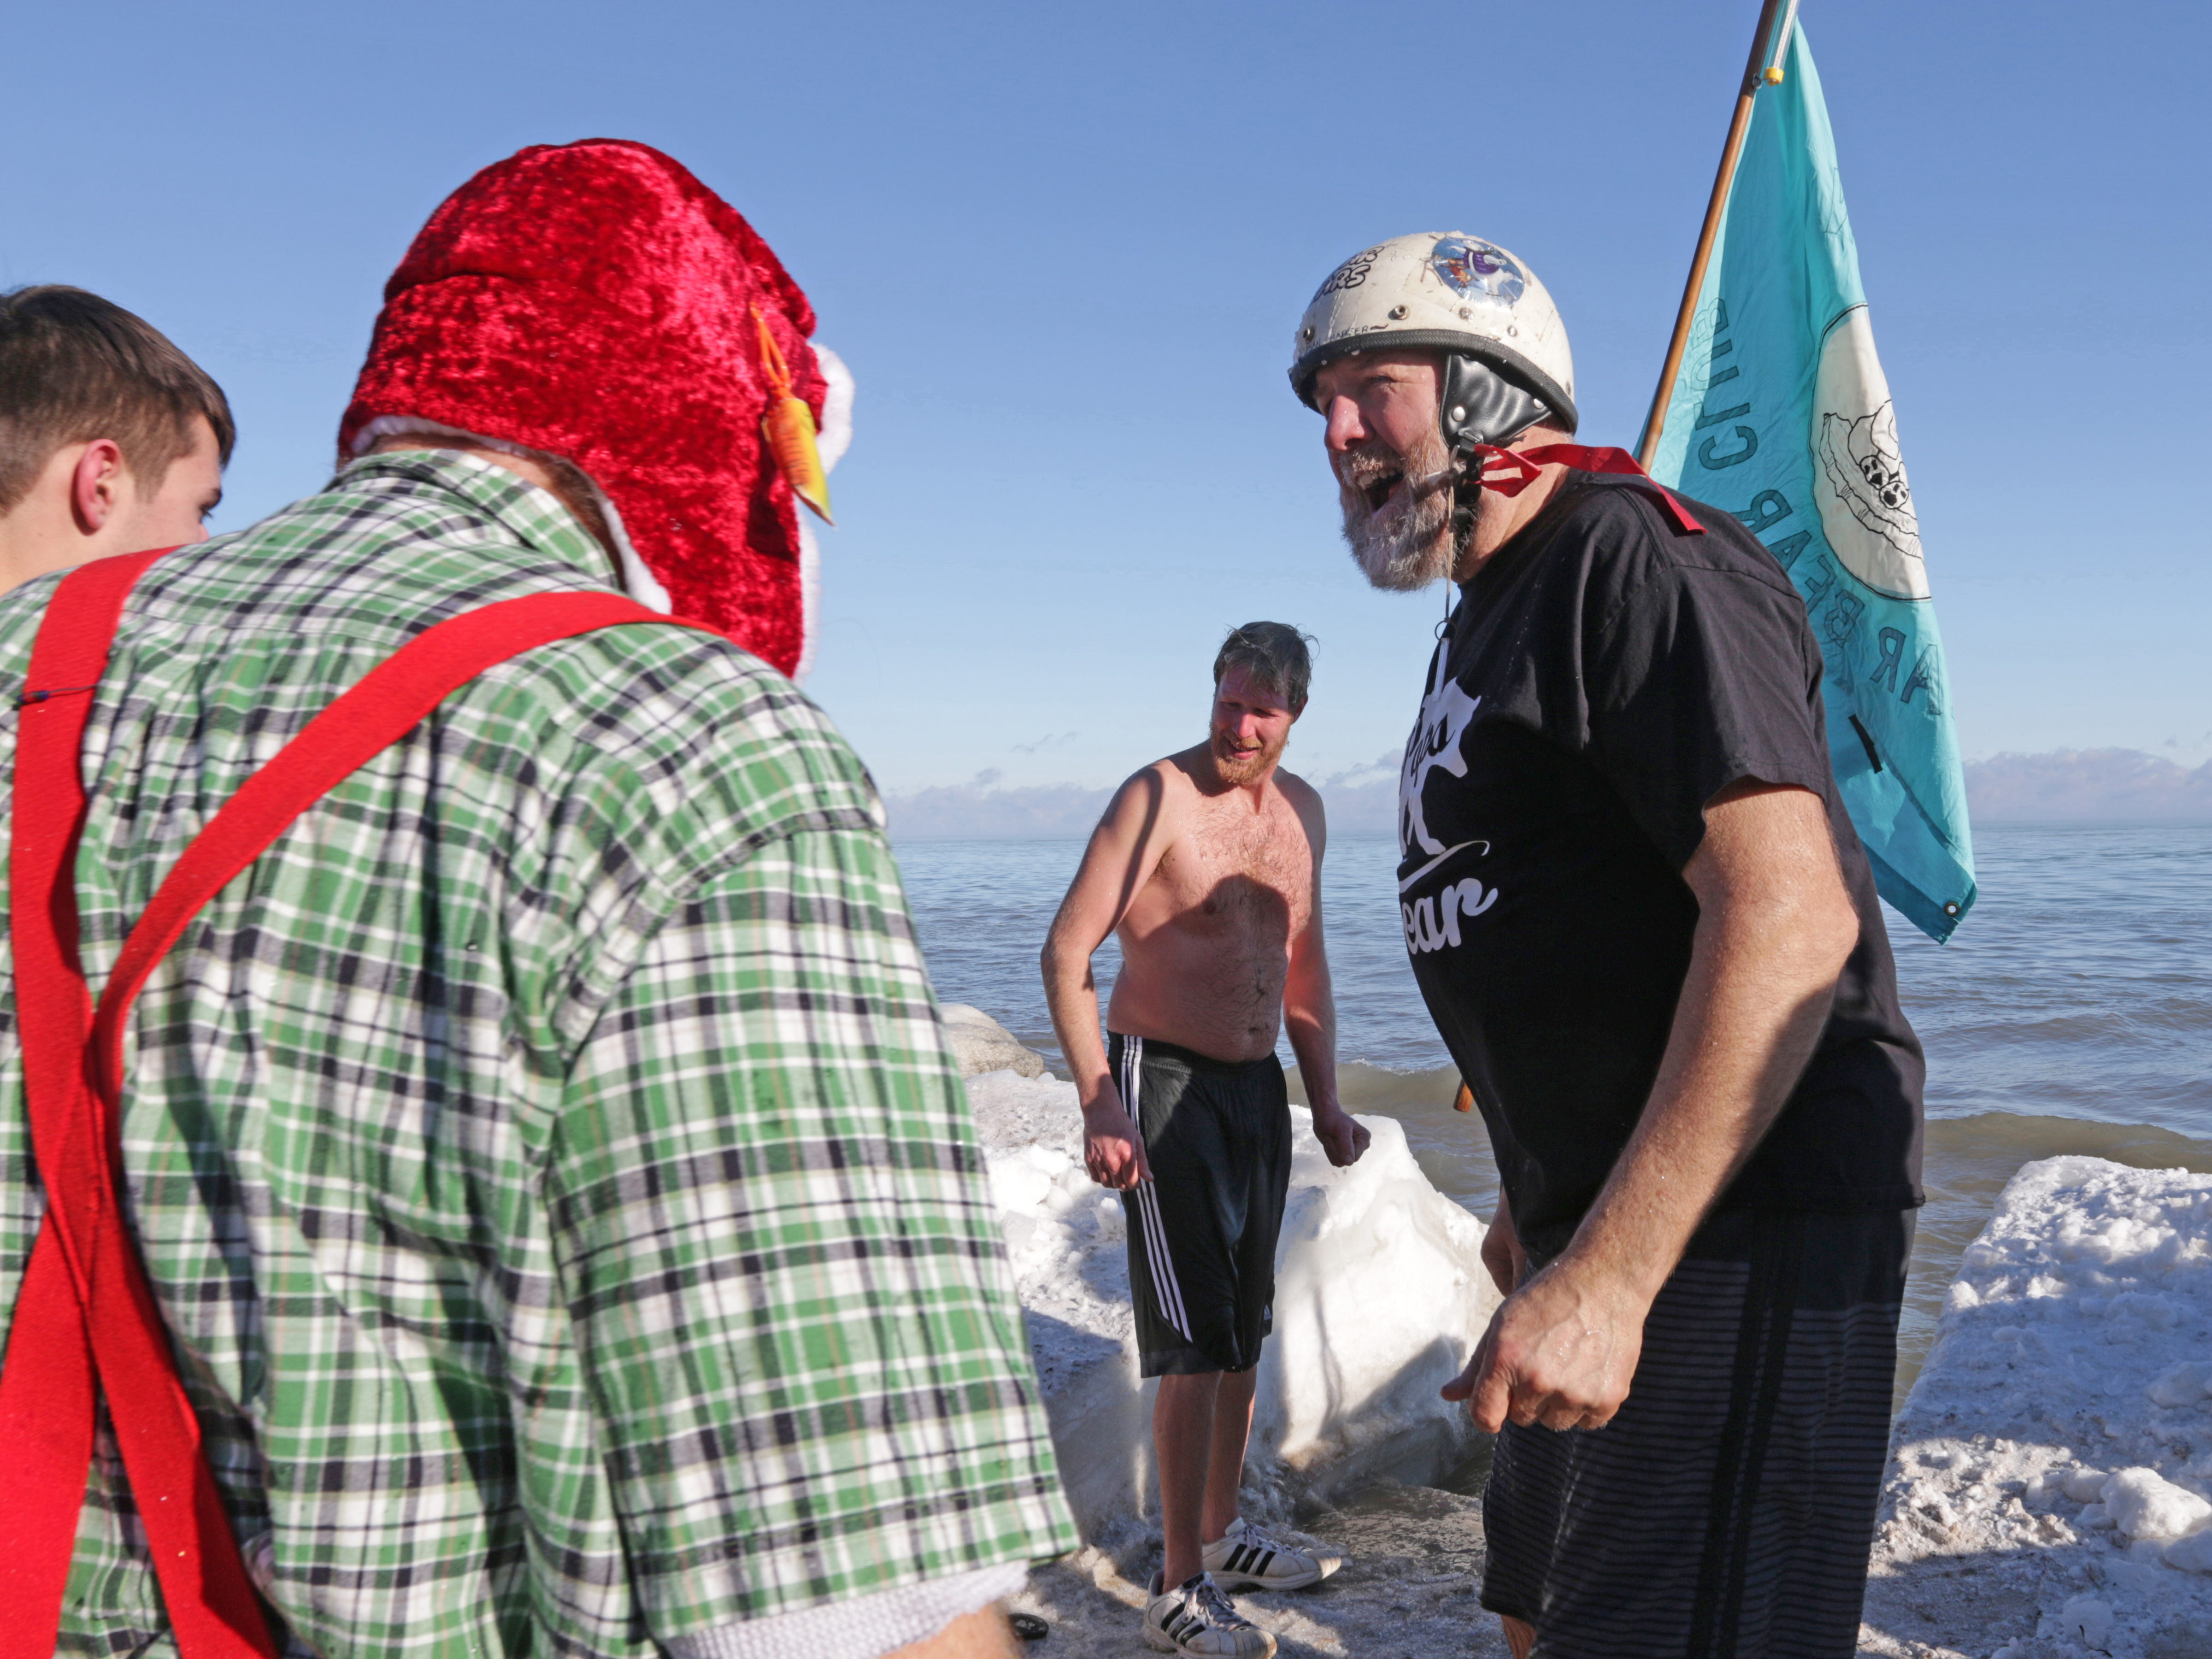 Justin Bohn, center, and his dad Arthur, right, take in Lake Michigan during the annual Polar Bear dip, Monday, January 1, 2018, in Sheboygan, Wis.